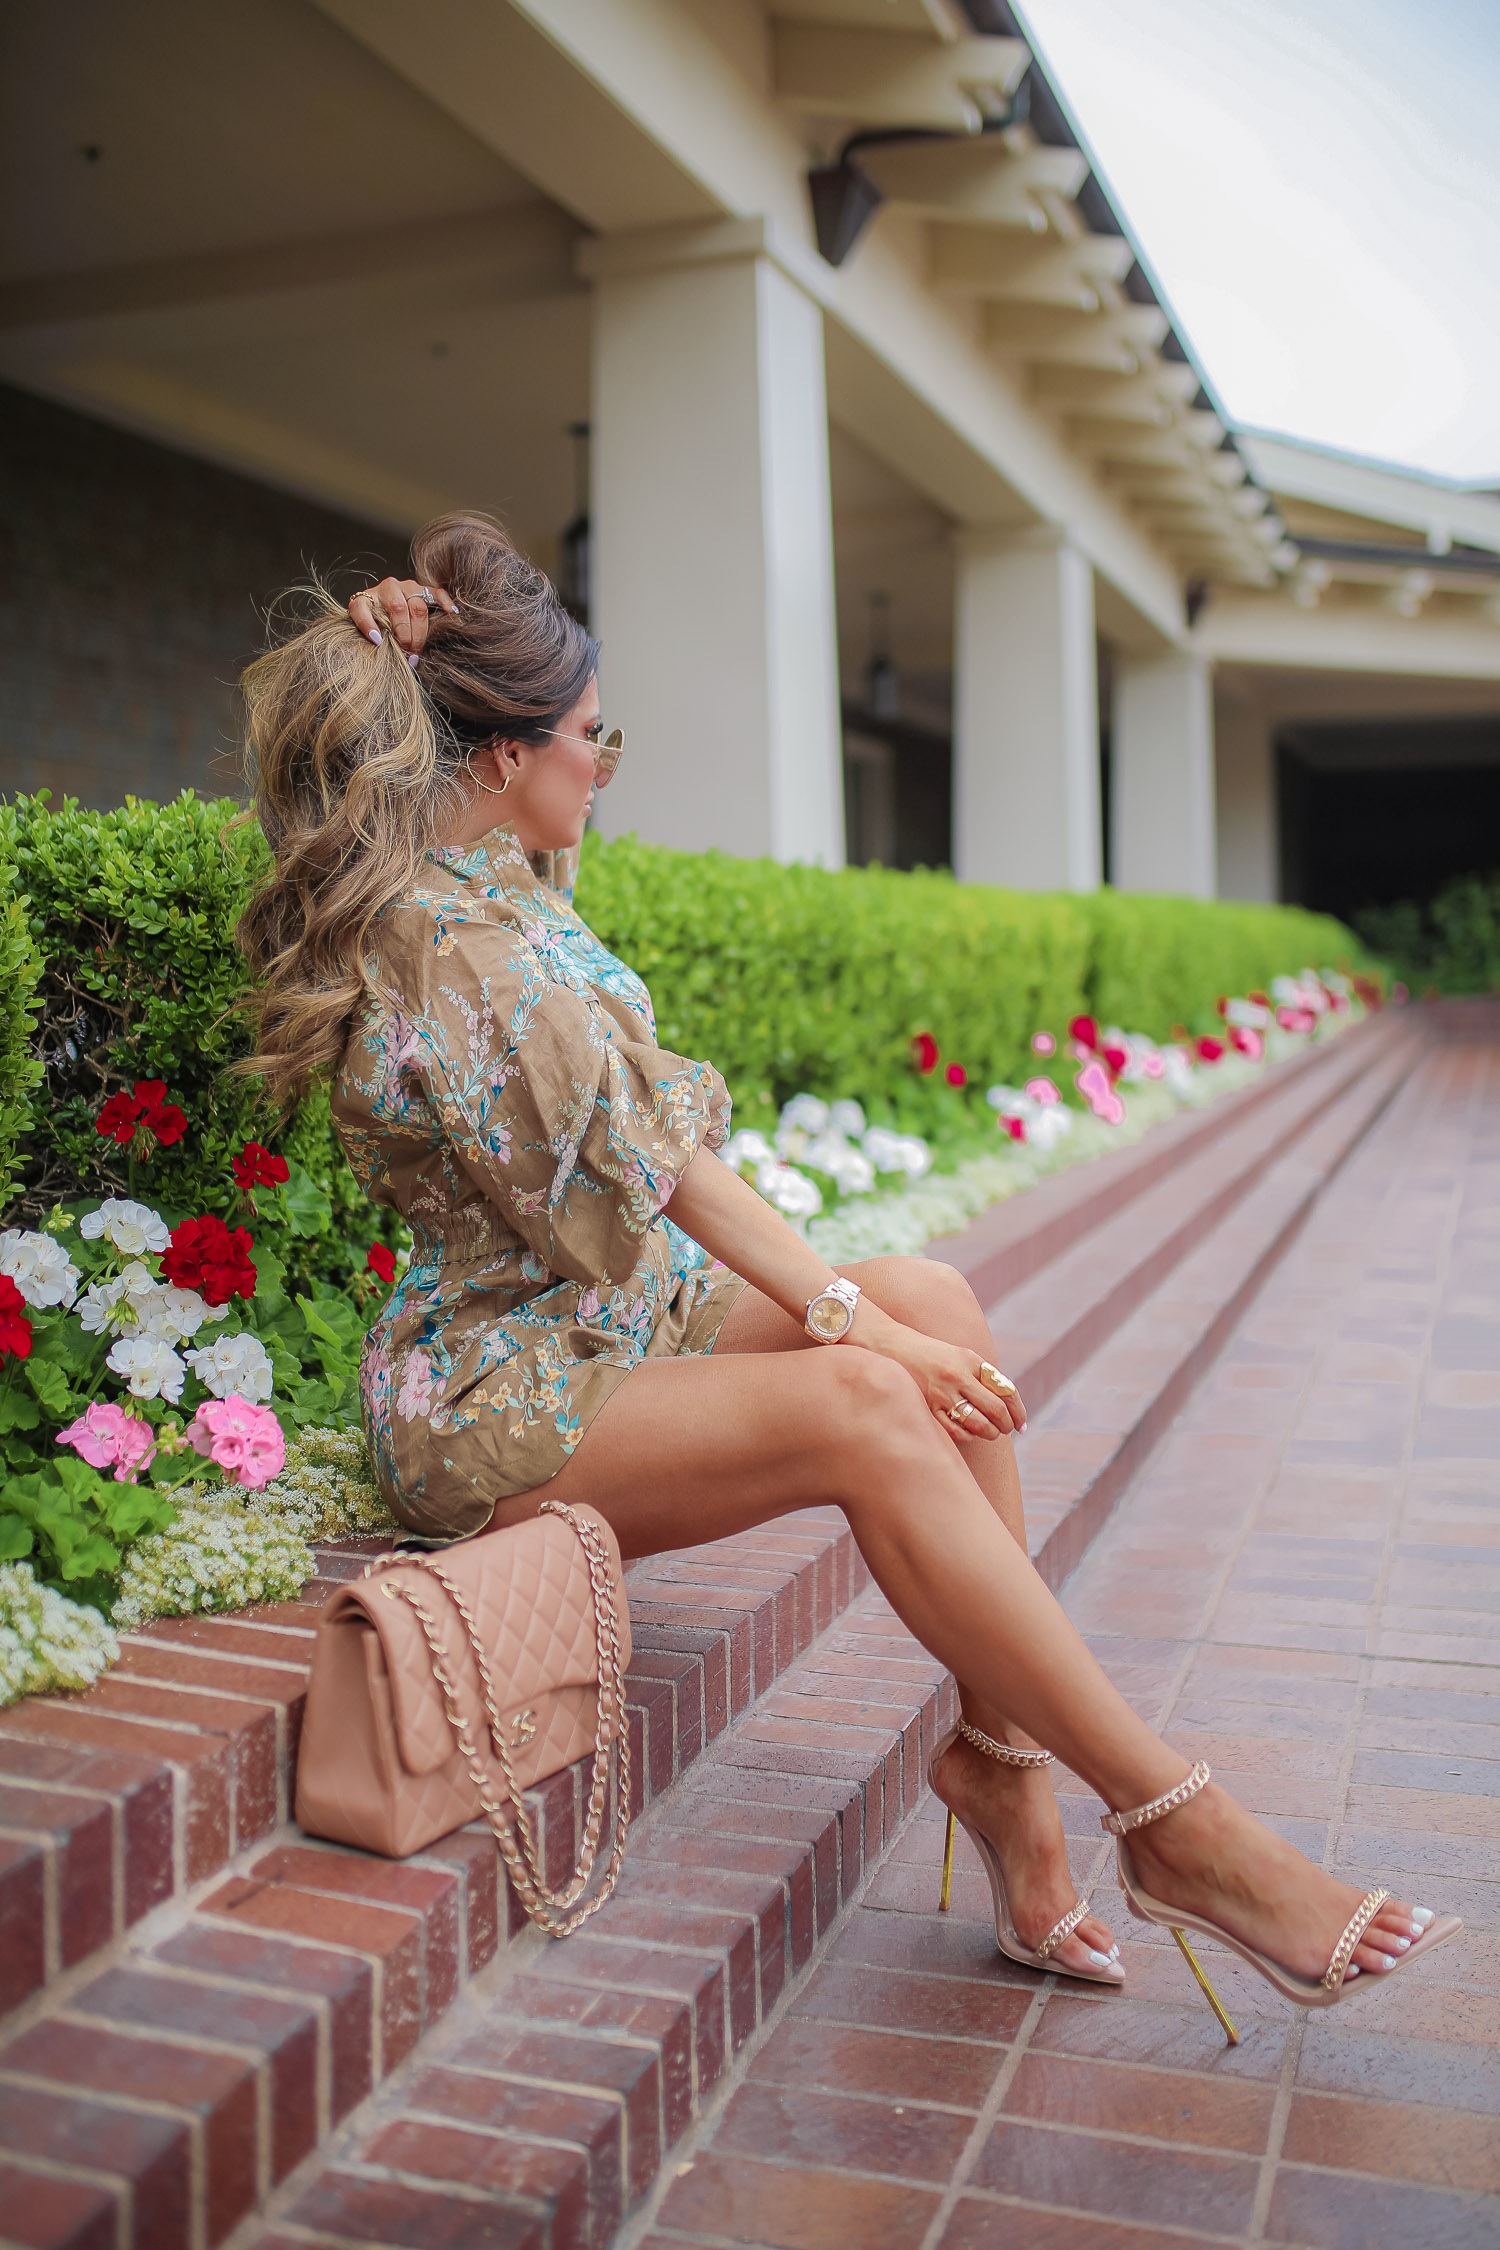 Zimmerman-floral-utility-romper-jessica-rich-heels-laguna-beach-montage-emily-gemma-cute-rompers-spring-2021-pinterest-summer-fashion-2021 | Instagram Recap by popular US life and style blog, The Sweetest Thing: image of Emily Gemma sign on some brick steps next to some green bushes and red, white and pink flowers and wearing a brown floral print utility rompers and tan gold chain strap stiletto heel sandals.